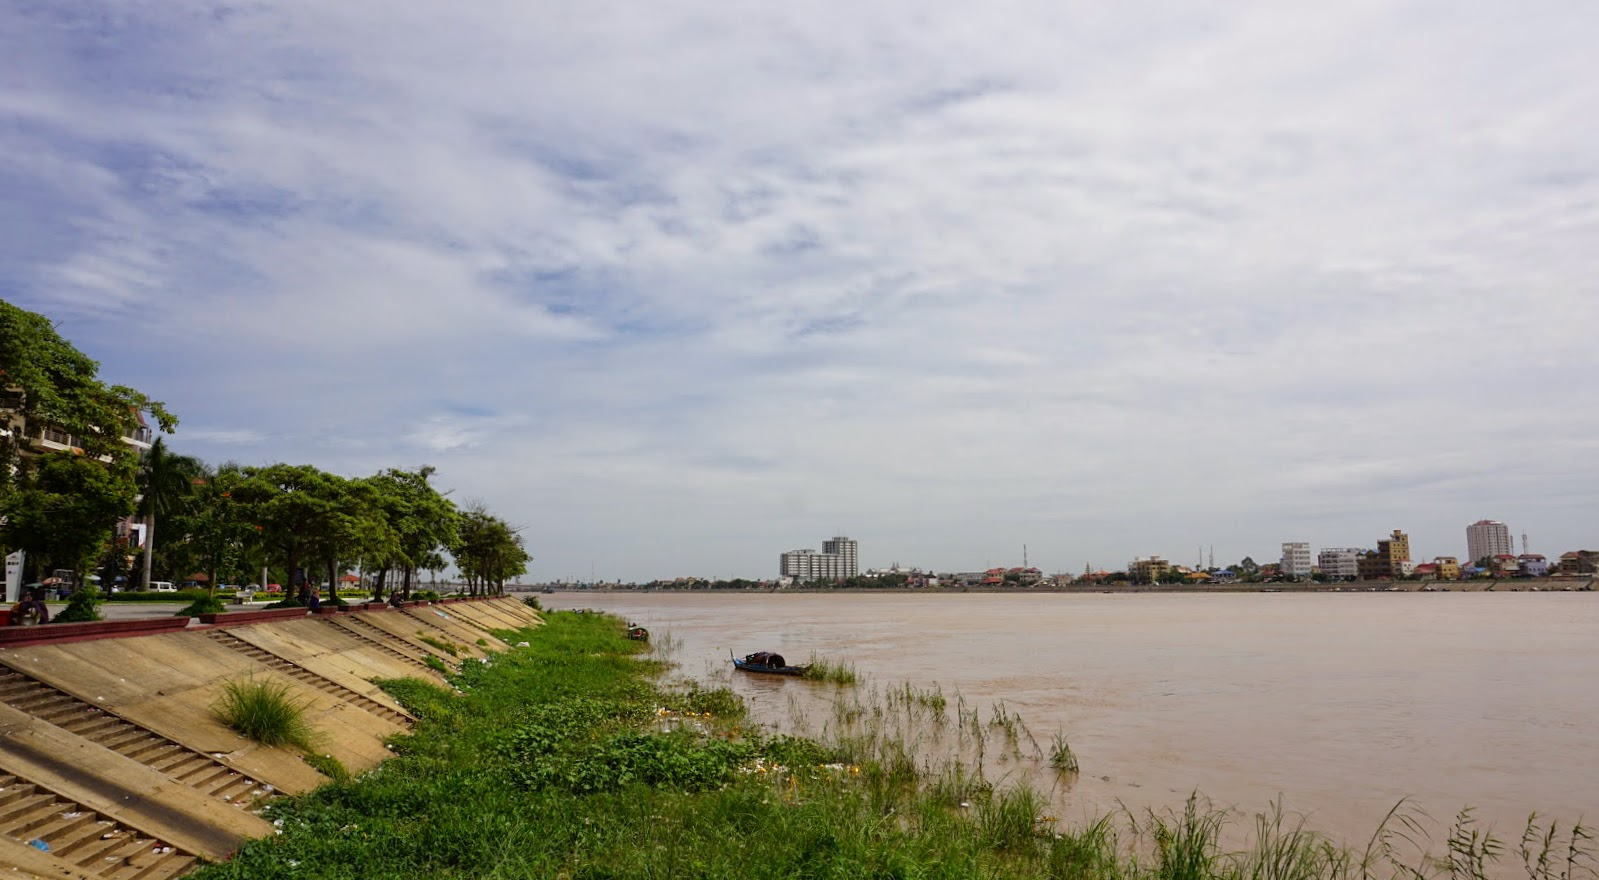 The Mekong river, seen from Sisowath Quay